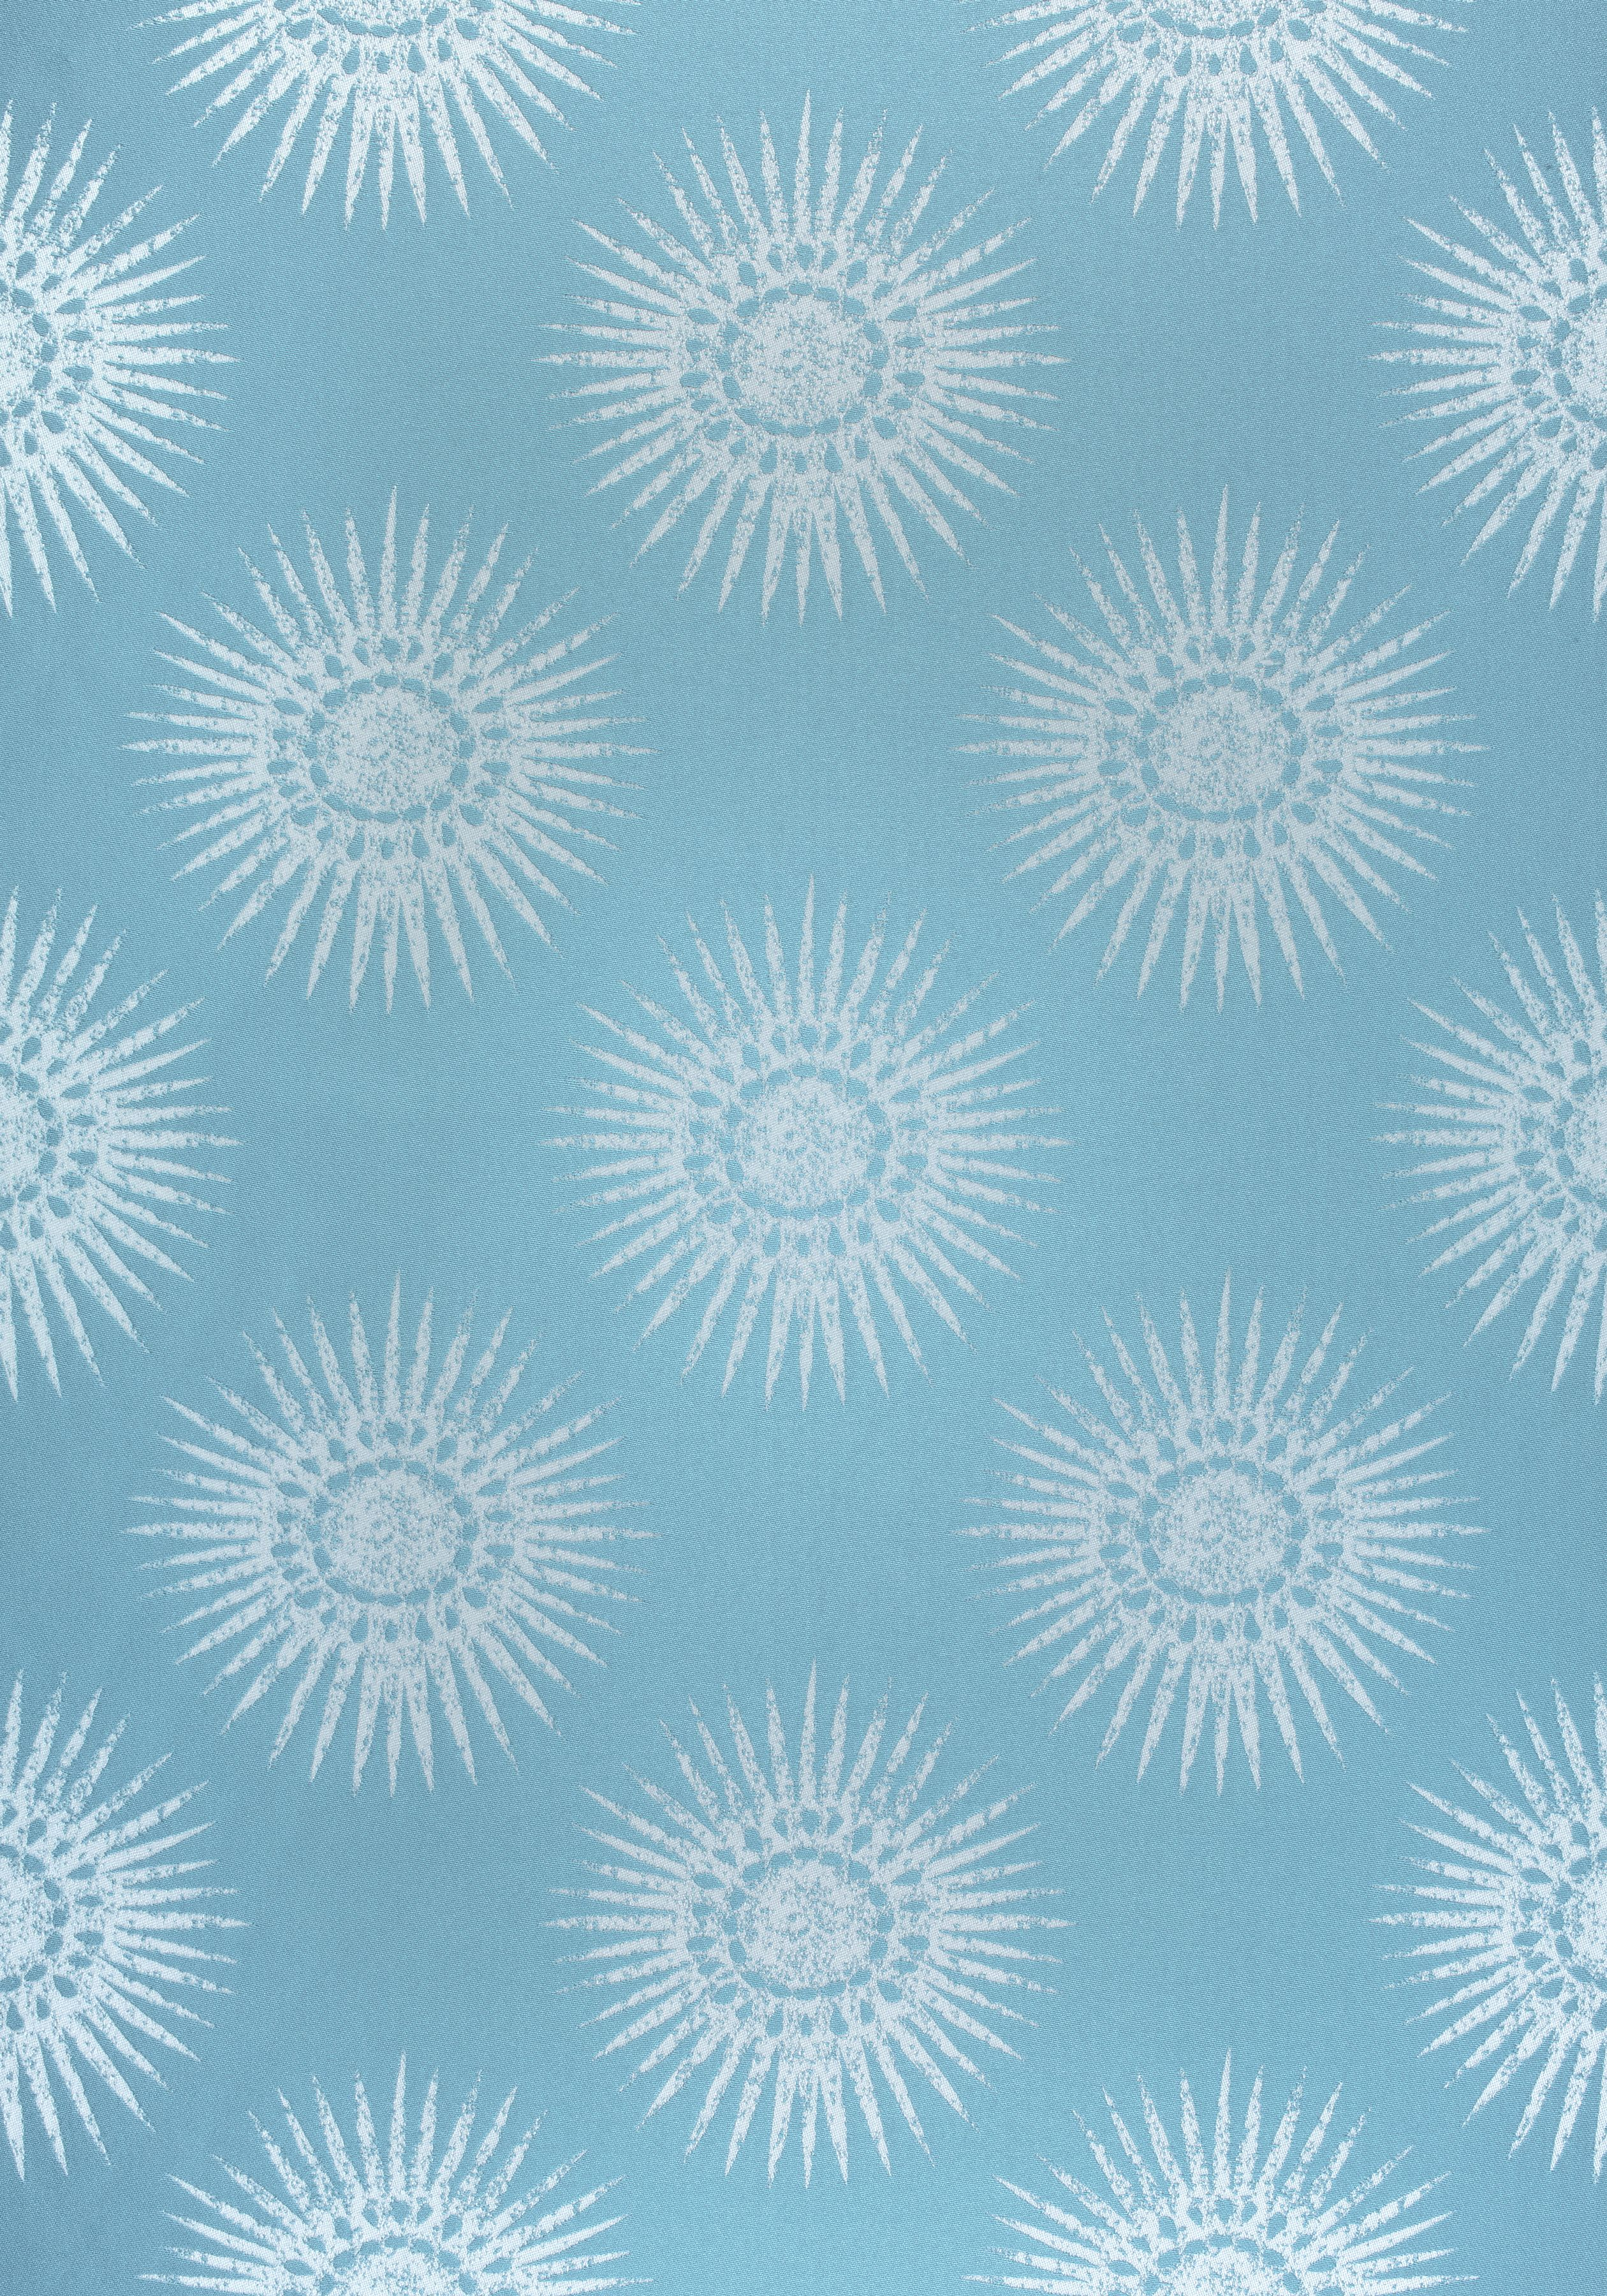 BAHIA WOVEN, Spa Blue, W80778, Collection Solstice from Thibaut